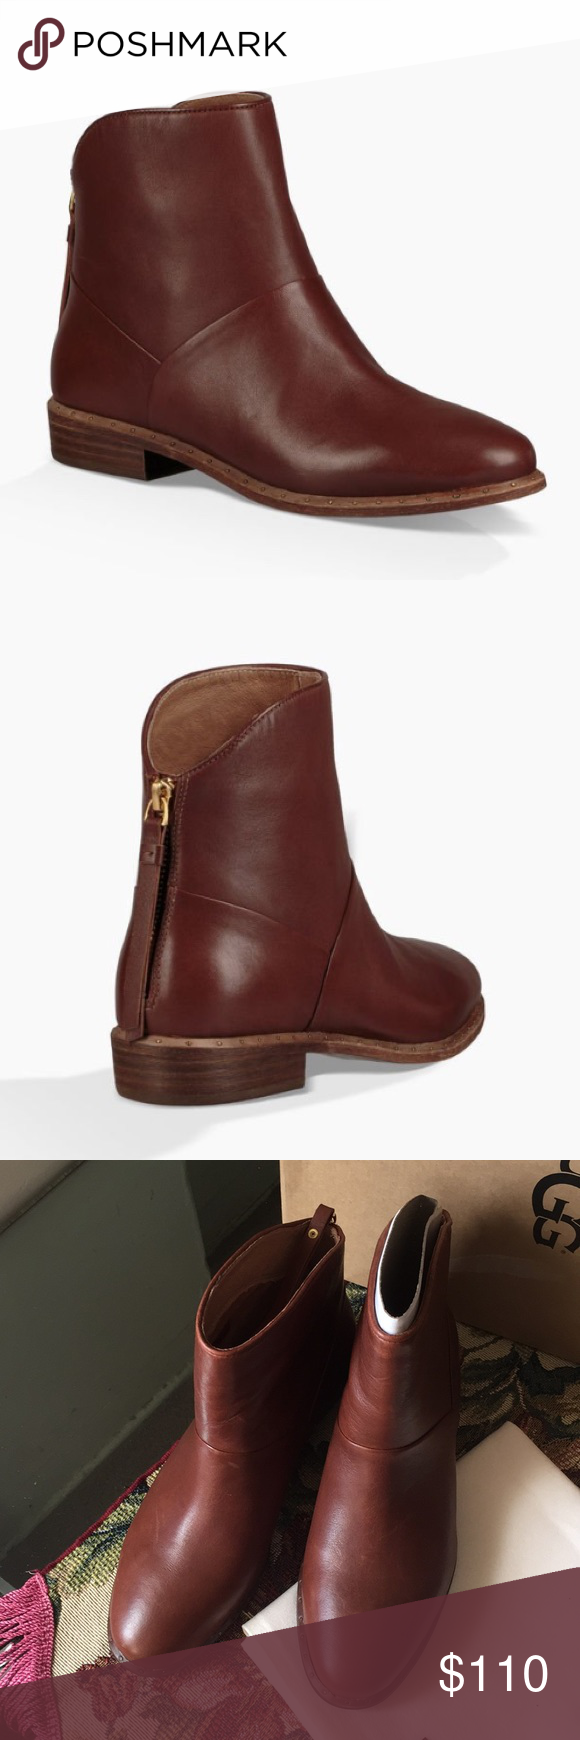 30300e84794 NEW UGG BRUNO. color:MID BROWN Model: 1018942 Impeccably cut from ...